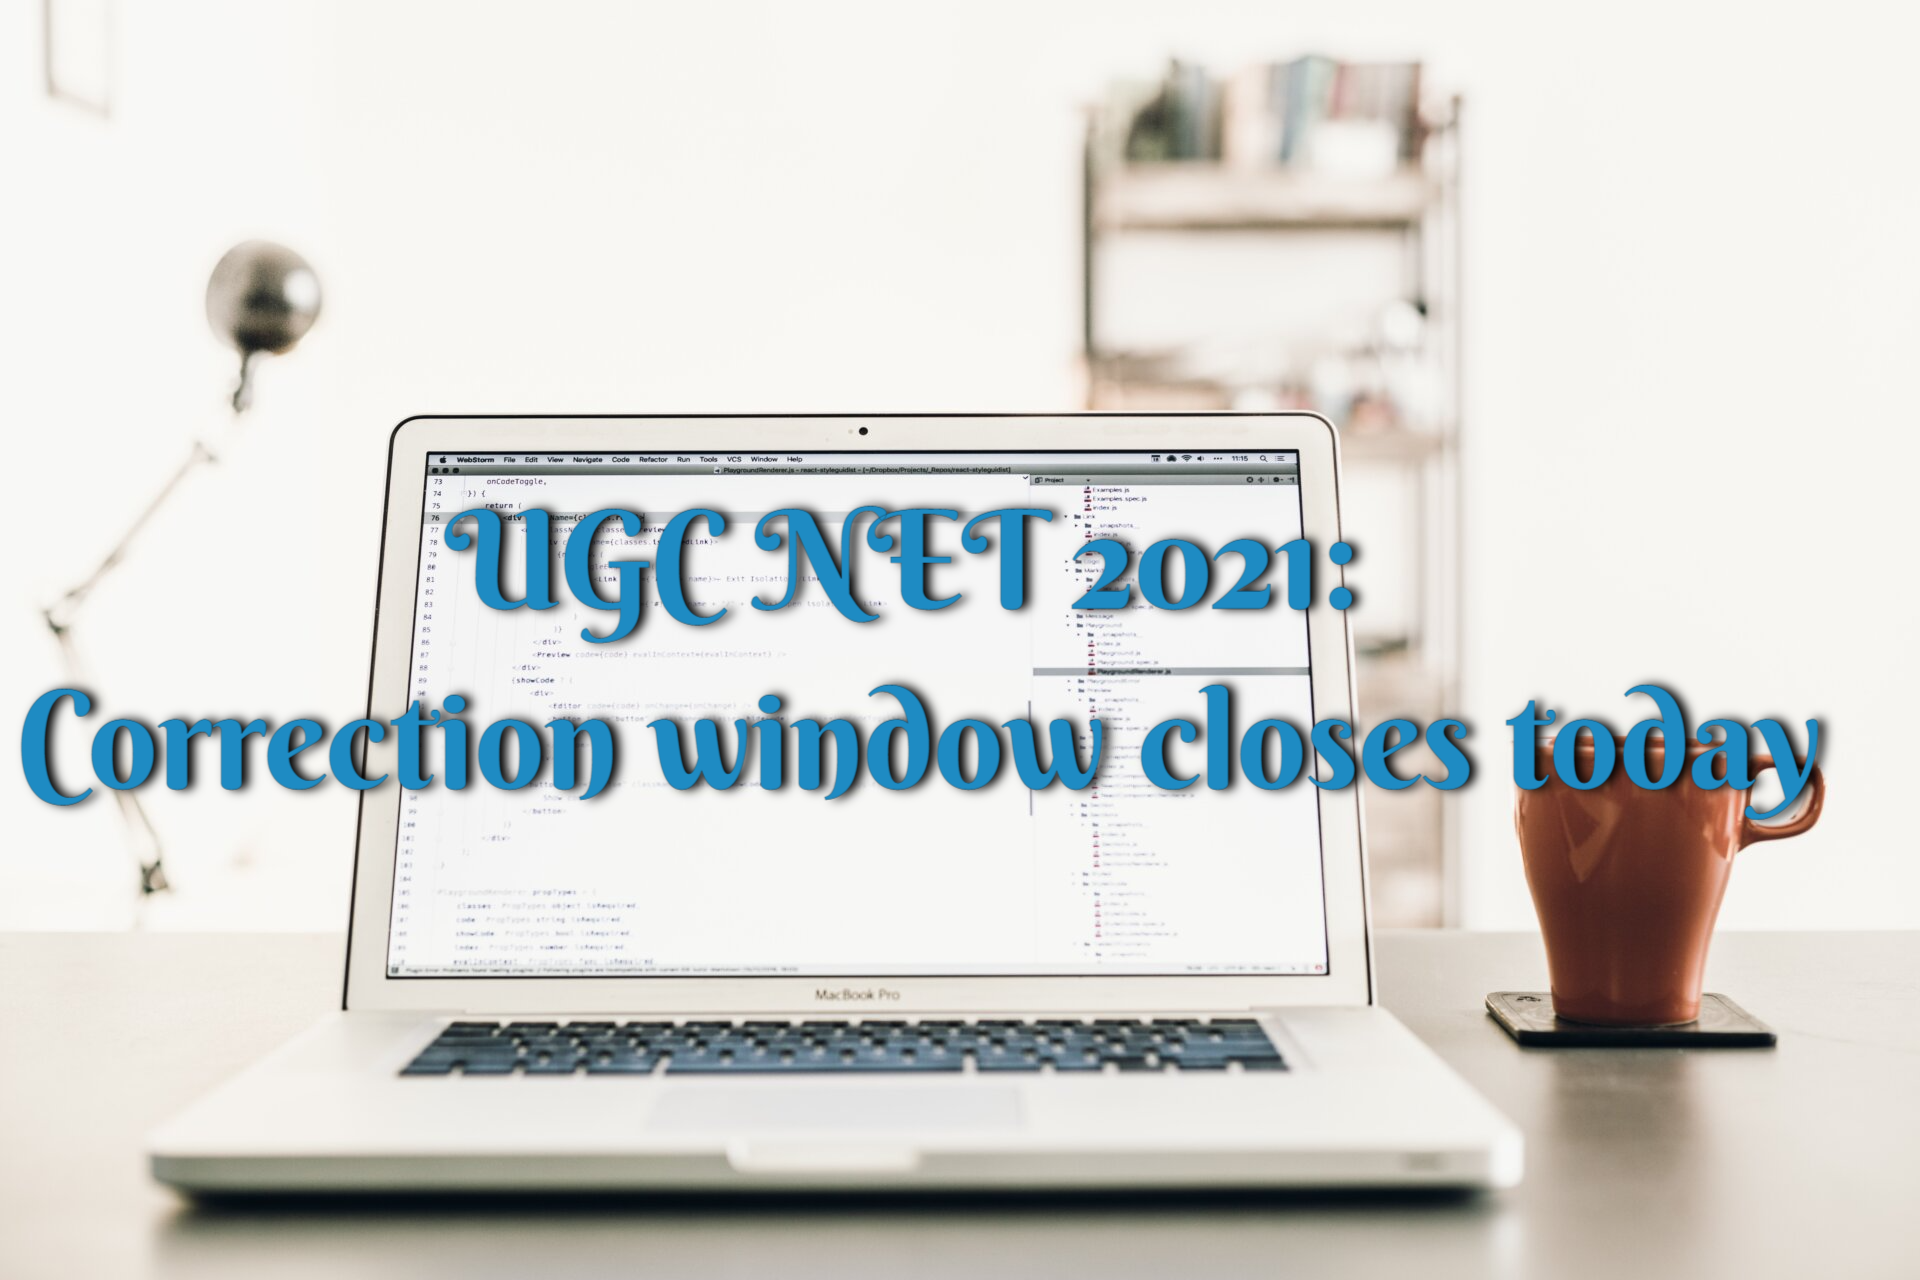 Today is the deadline for UGC NET 2021 correction – Details can be found here